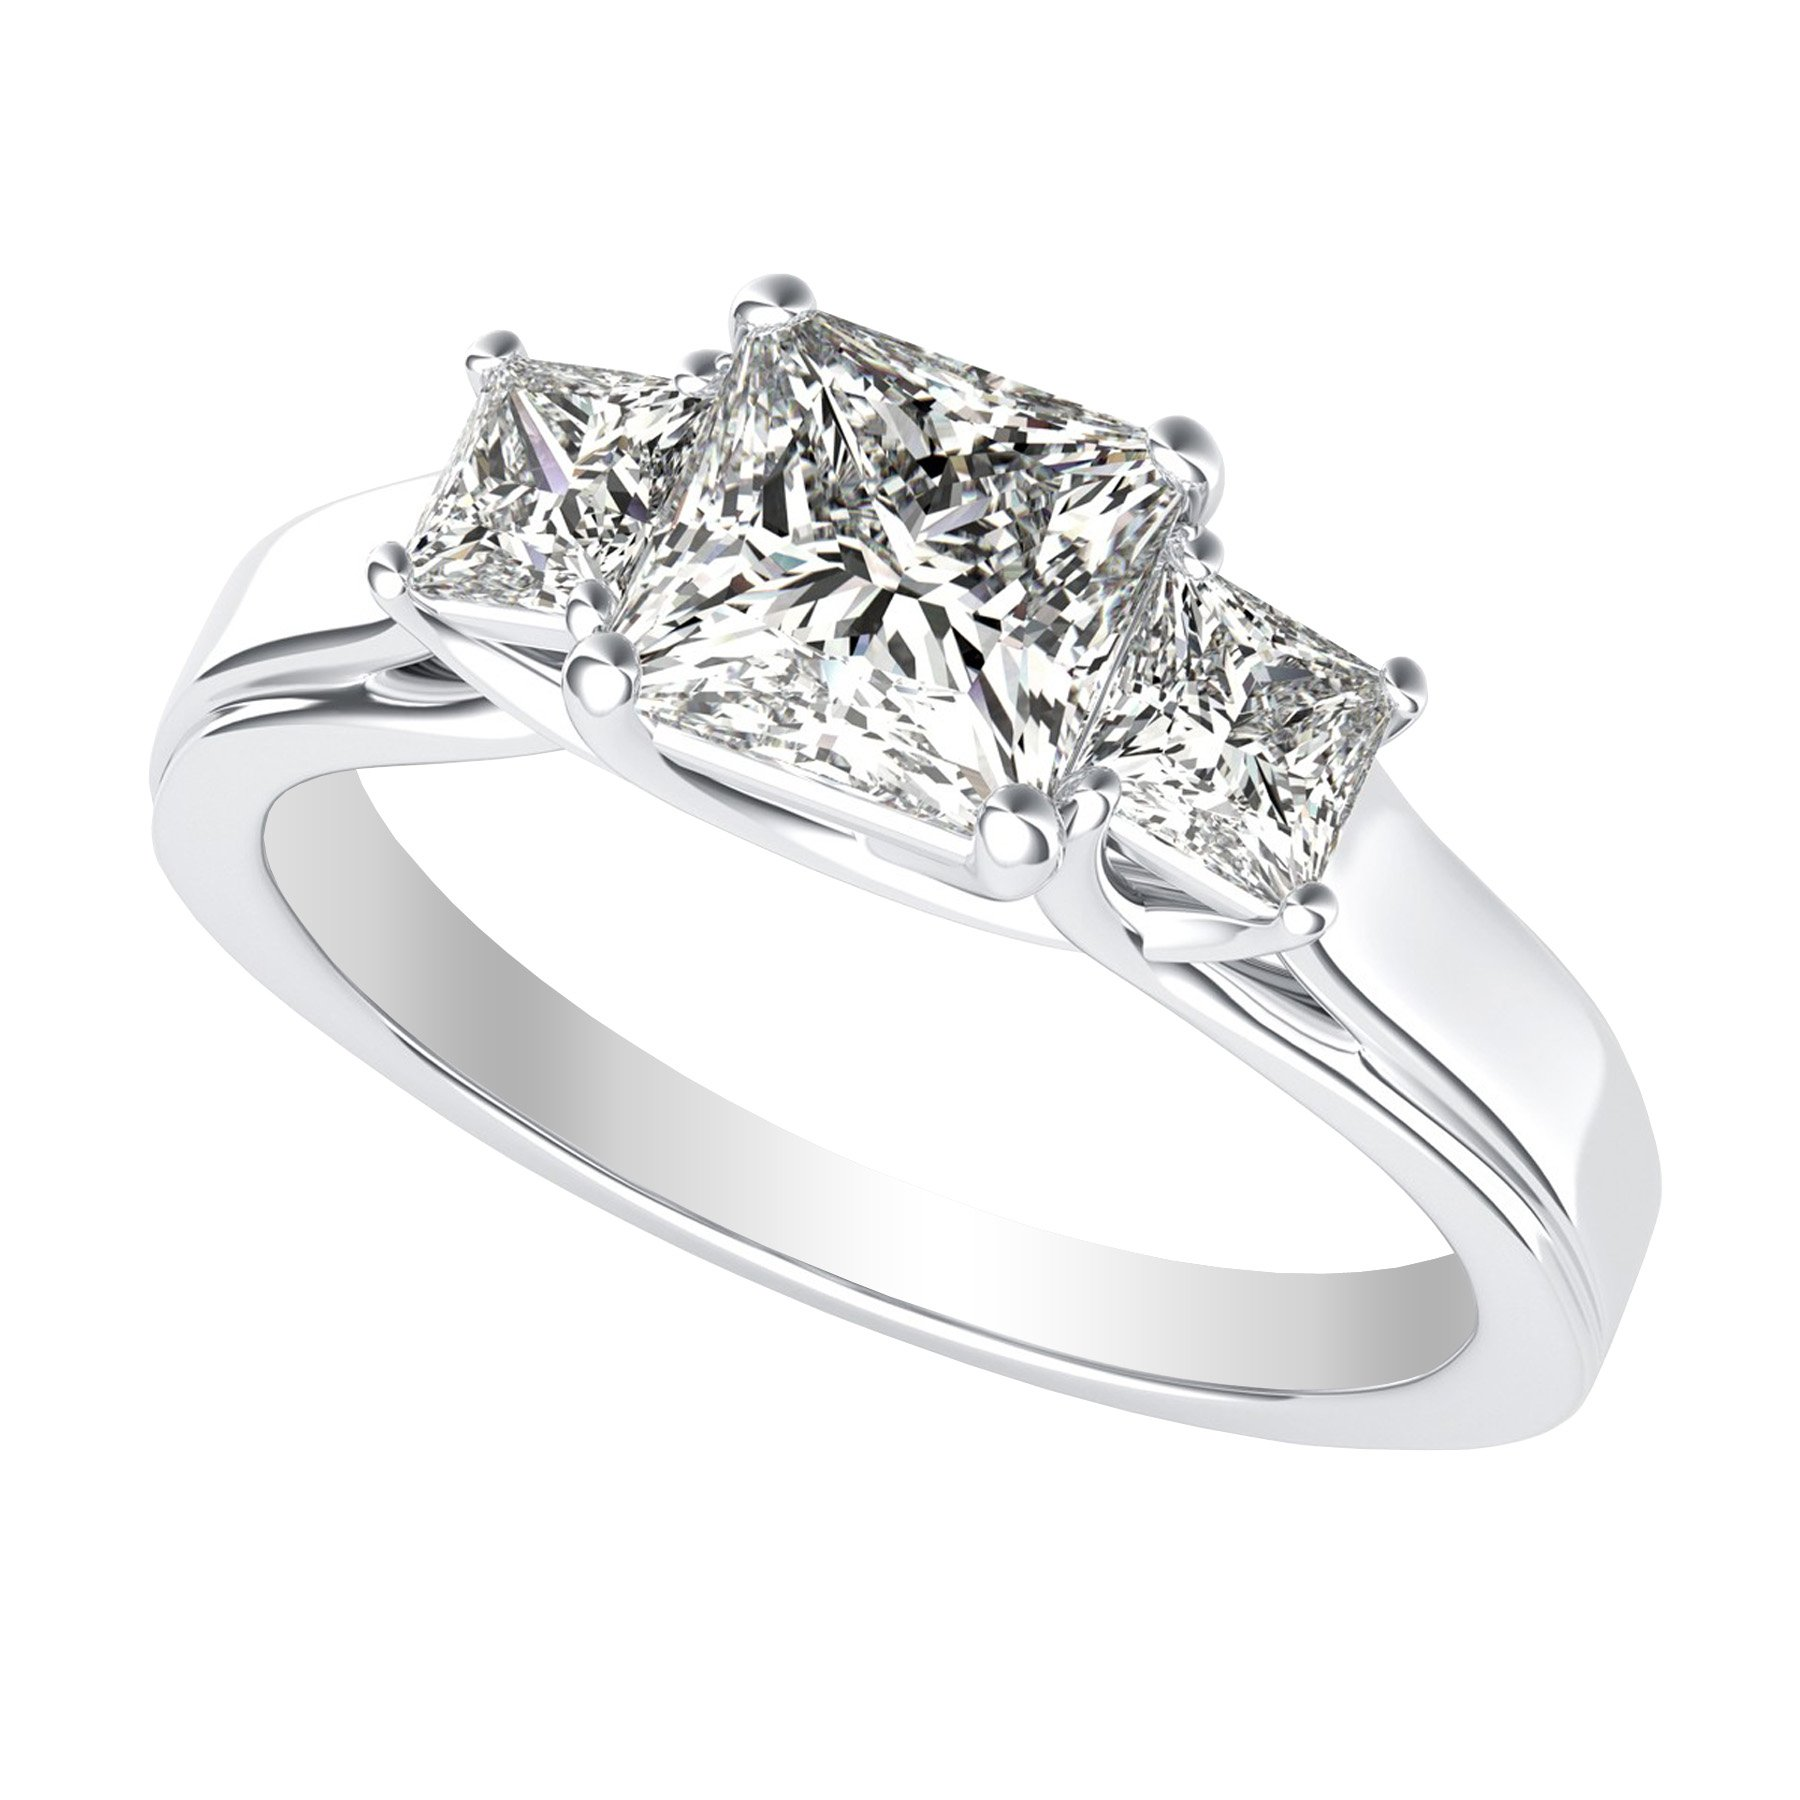 1.7 Carat 14K White Gold Princess Cut 3 Three Stone Diamond Engagement Ring (H-I Color I1-I2 Clarity)